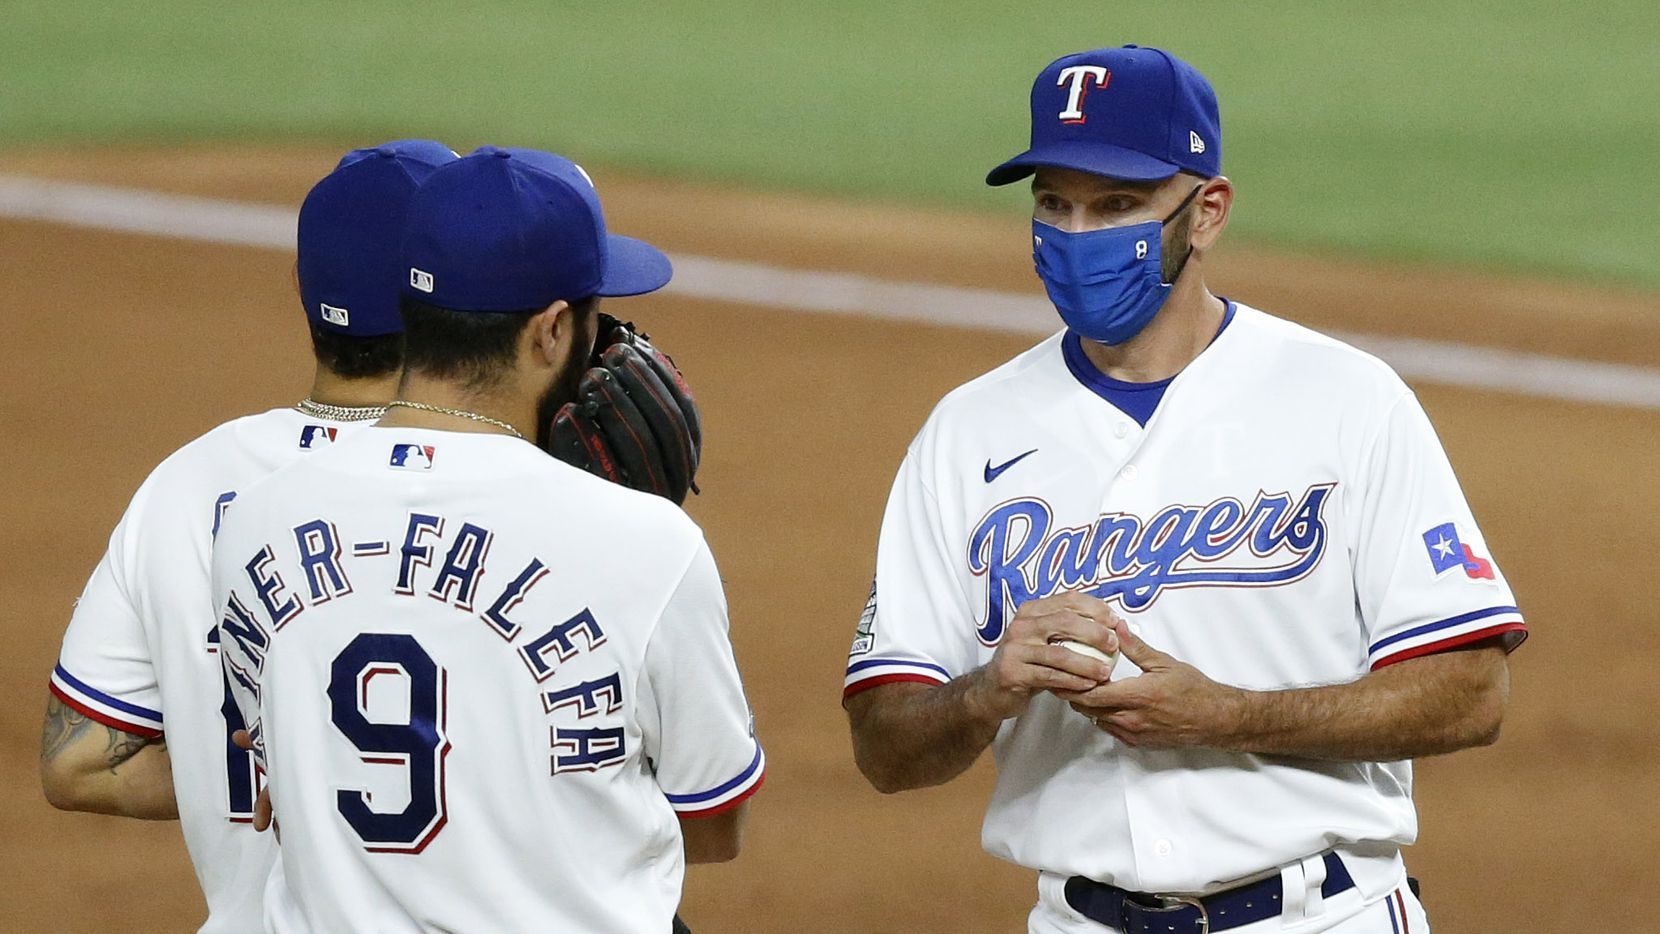 Texas Rangers manager Chris Woodward (right) visits with shortstop Isiah Kiner-Falefa (9) on the mound after pulling relief pitcher Juan Nicasio (40) during the eighth inning at Globe Life Field in Arlington, Monday, August 17, 2020. Woodward was suspended by the league for a game. Nicasio gave up a grand slam to San Diego Padres Fernando Tatis Jr.